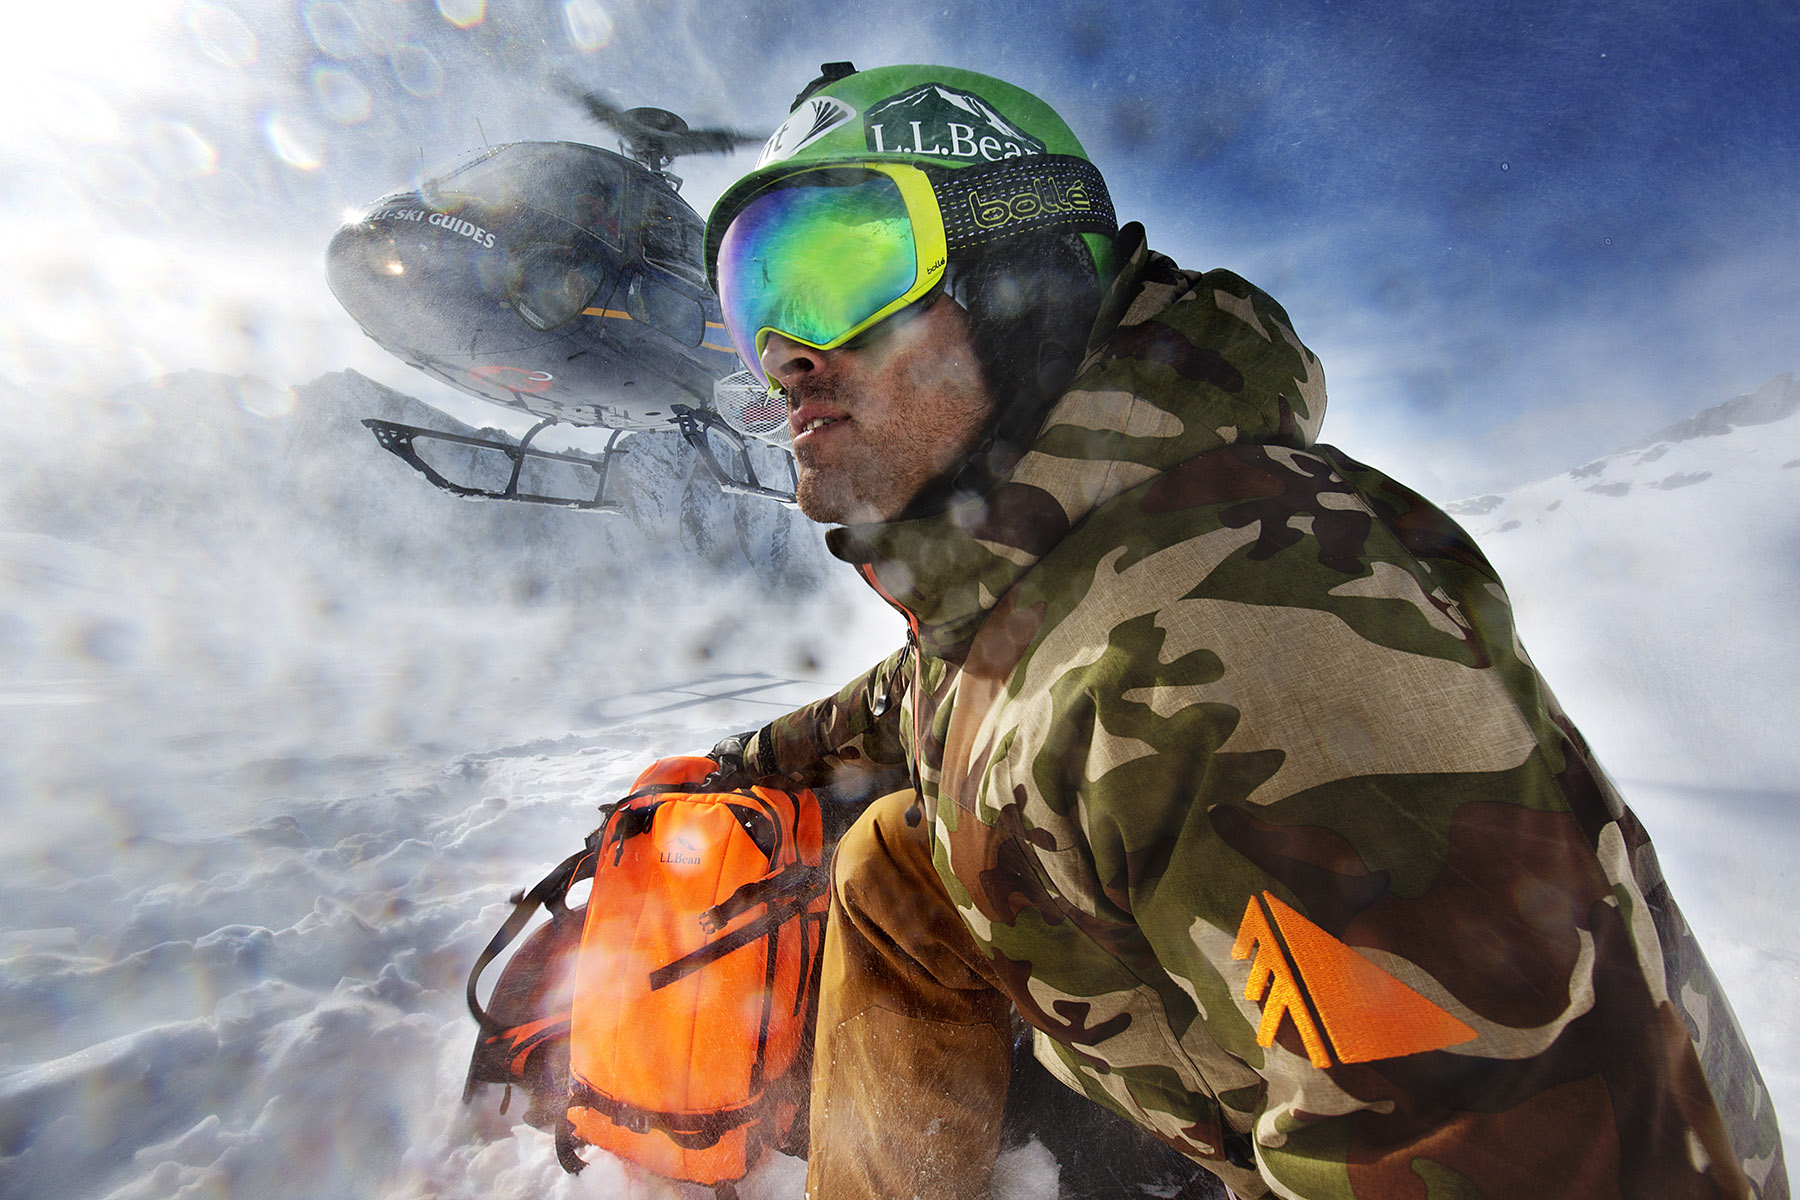 Seth Wescott wearing LL Bean outerwear while heli boarding in Valdez, Alaska by Boston based commercial lifestyle photographer Brian Nevins